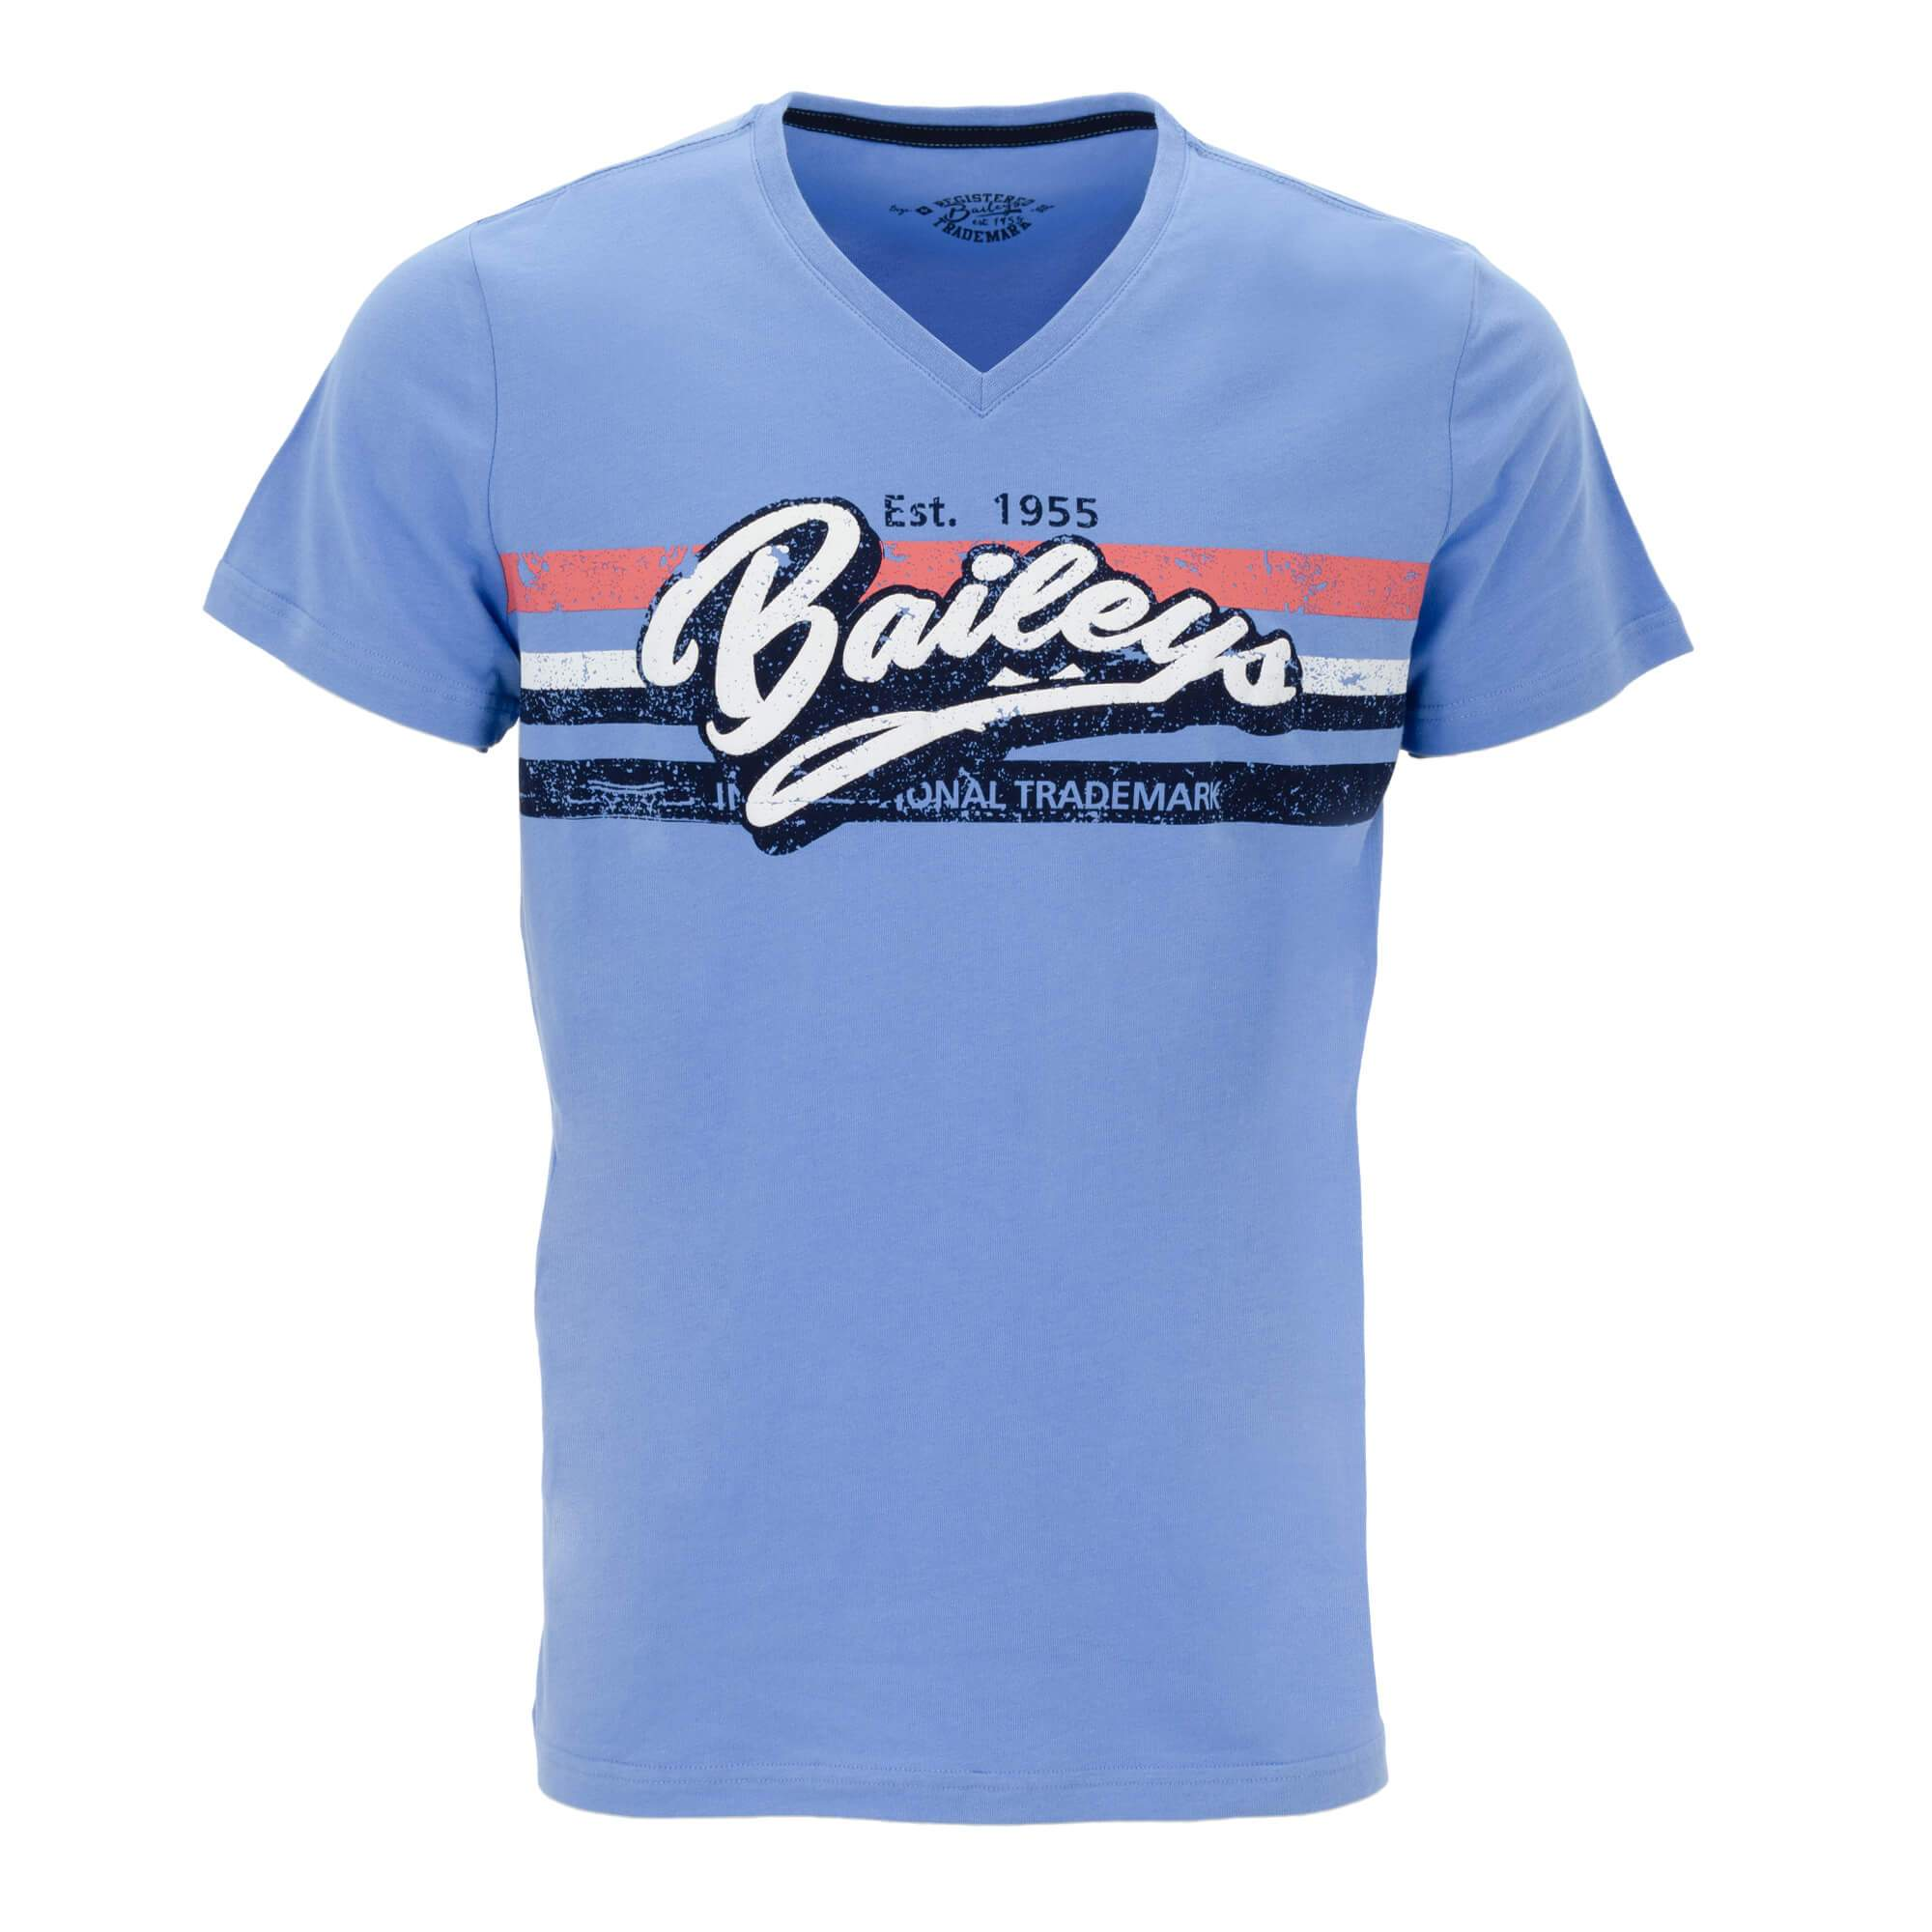 Camiseta estampada 915102